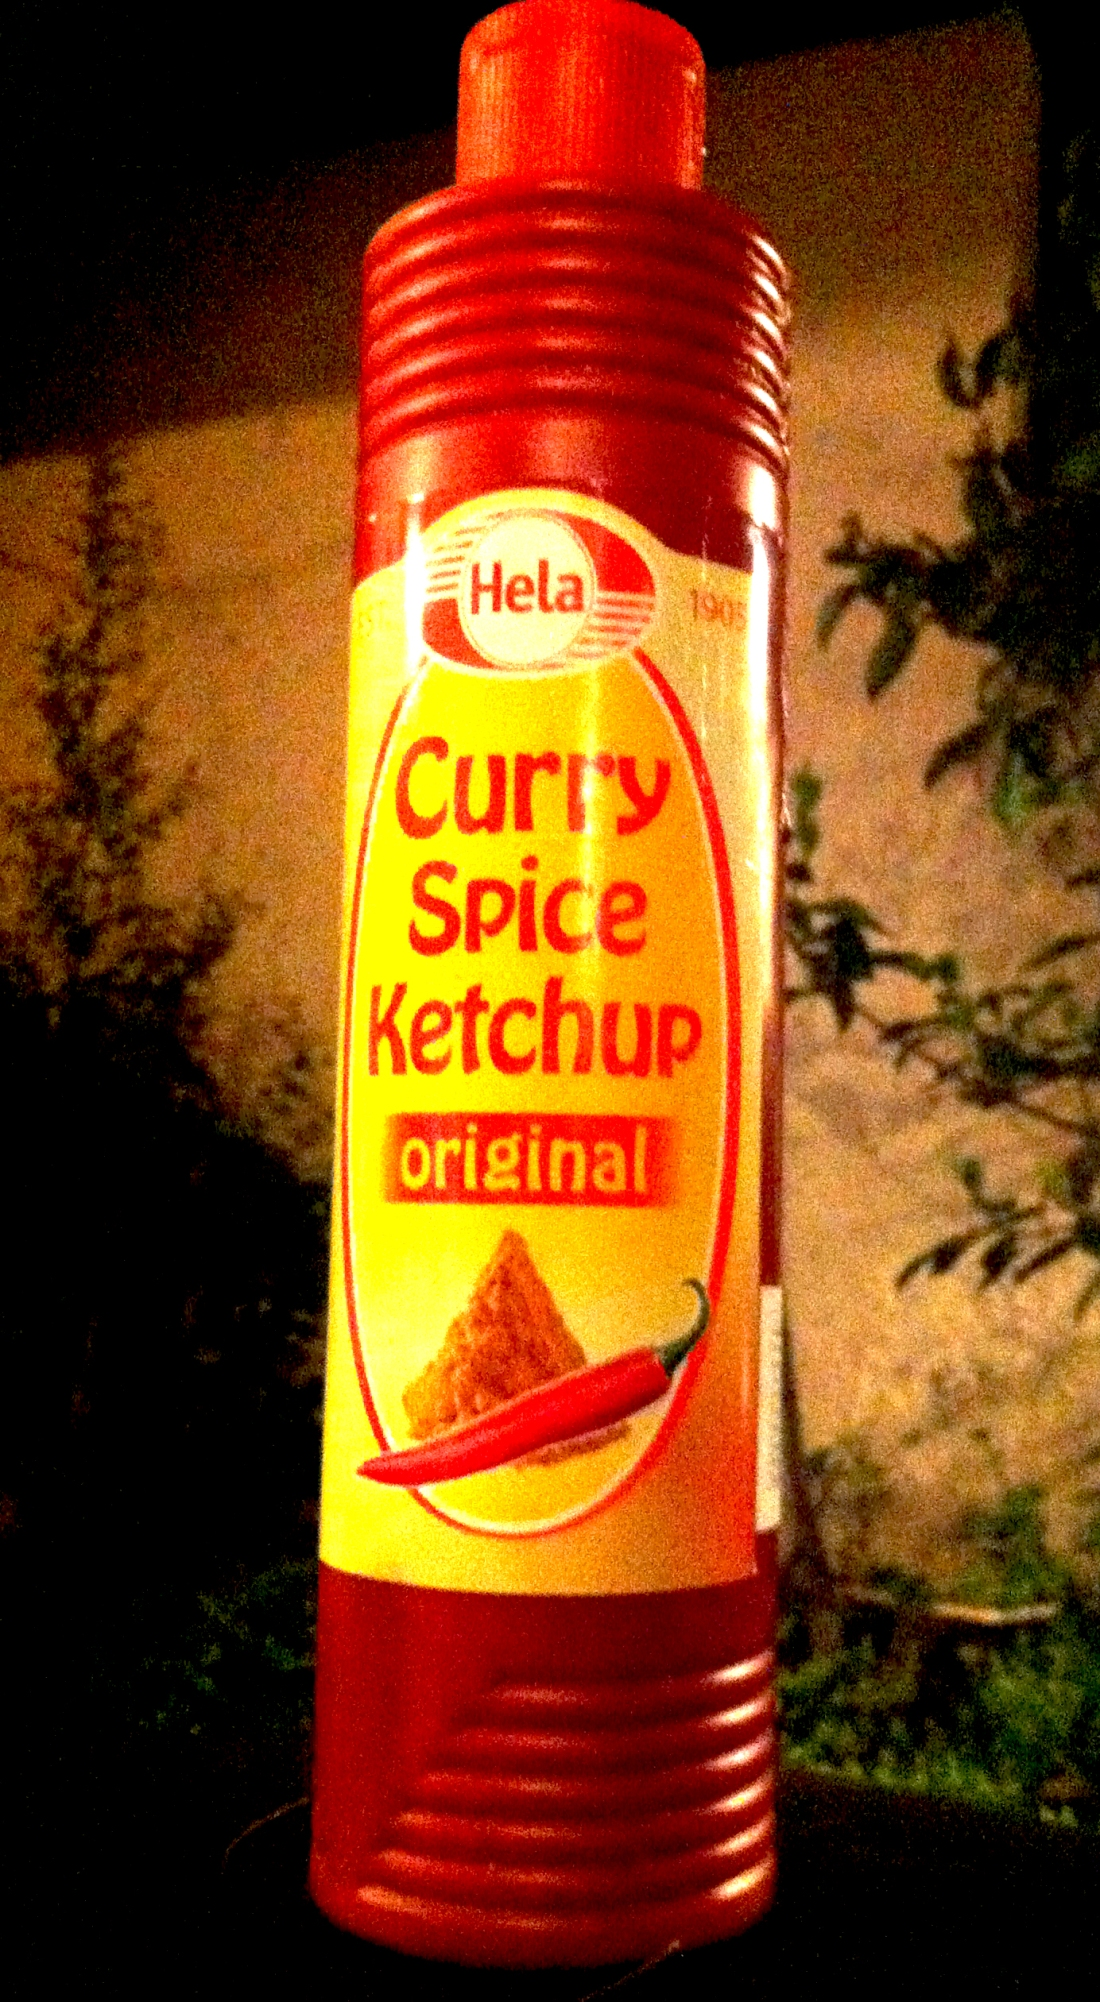 curry spice ketchup